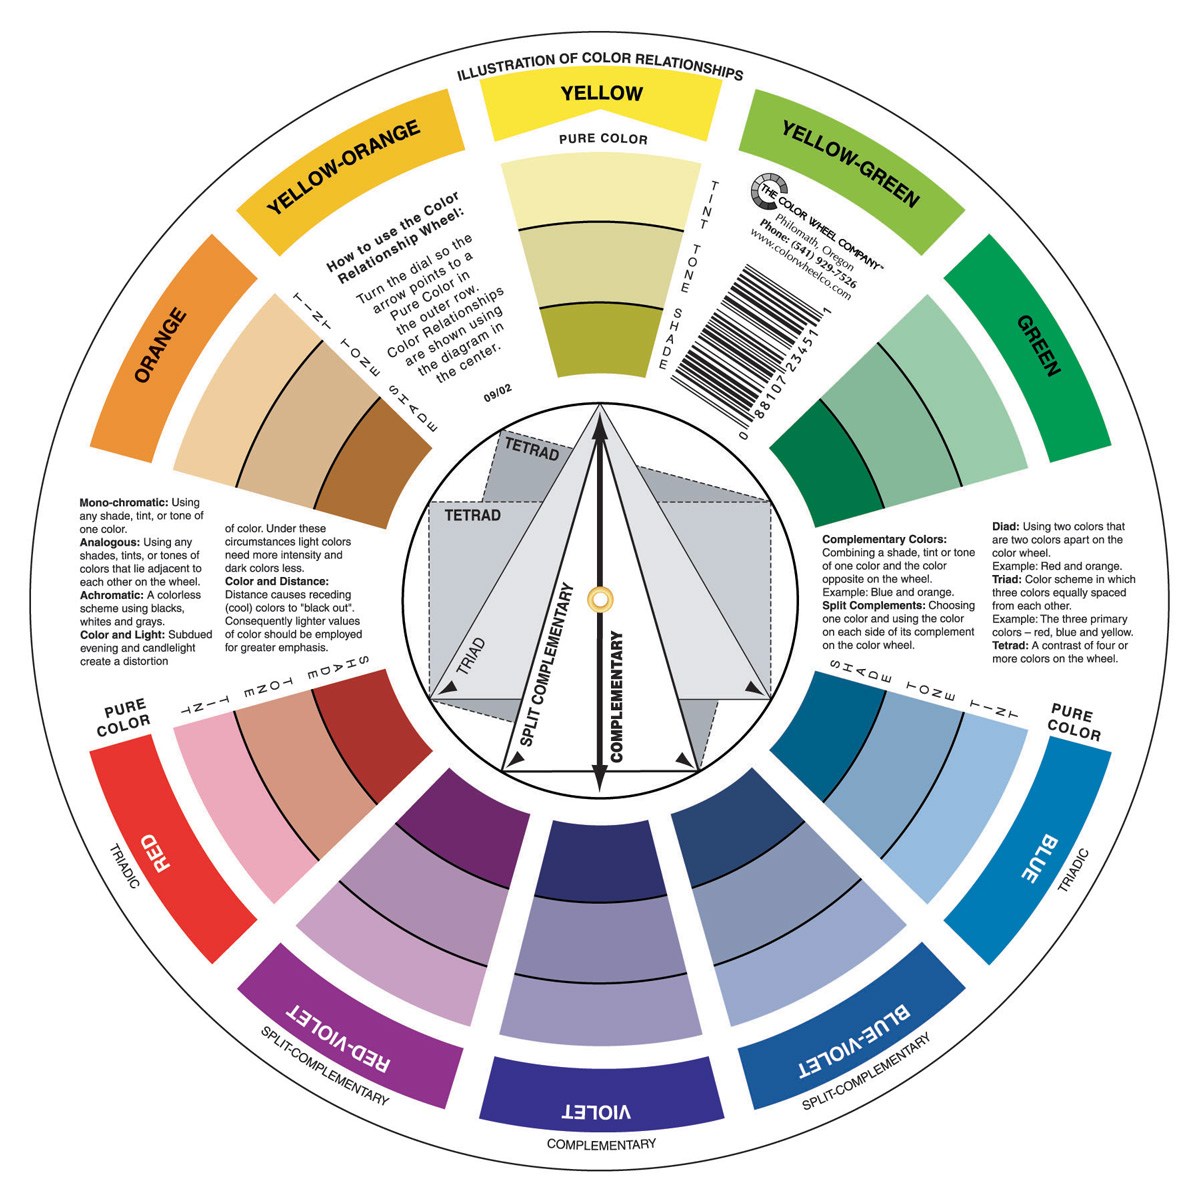 Traditional Theory of Complementary Colors